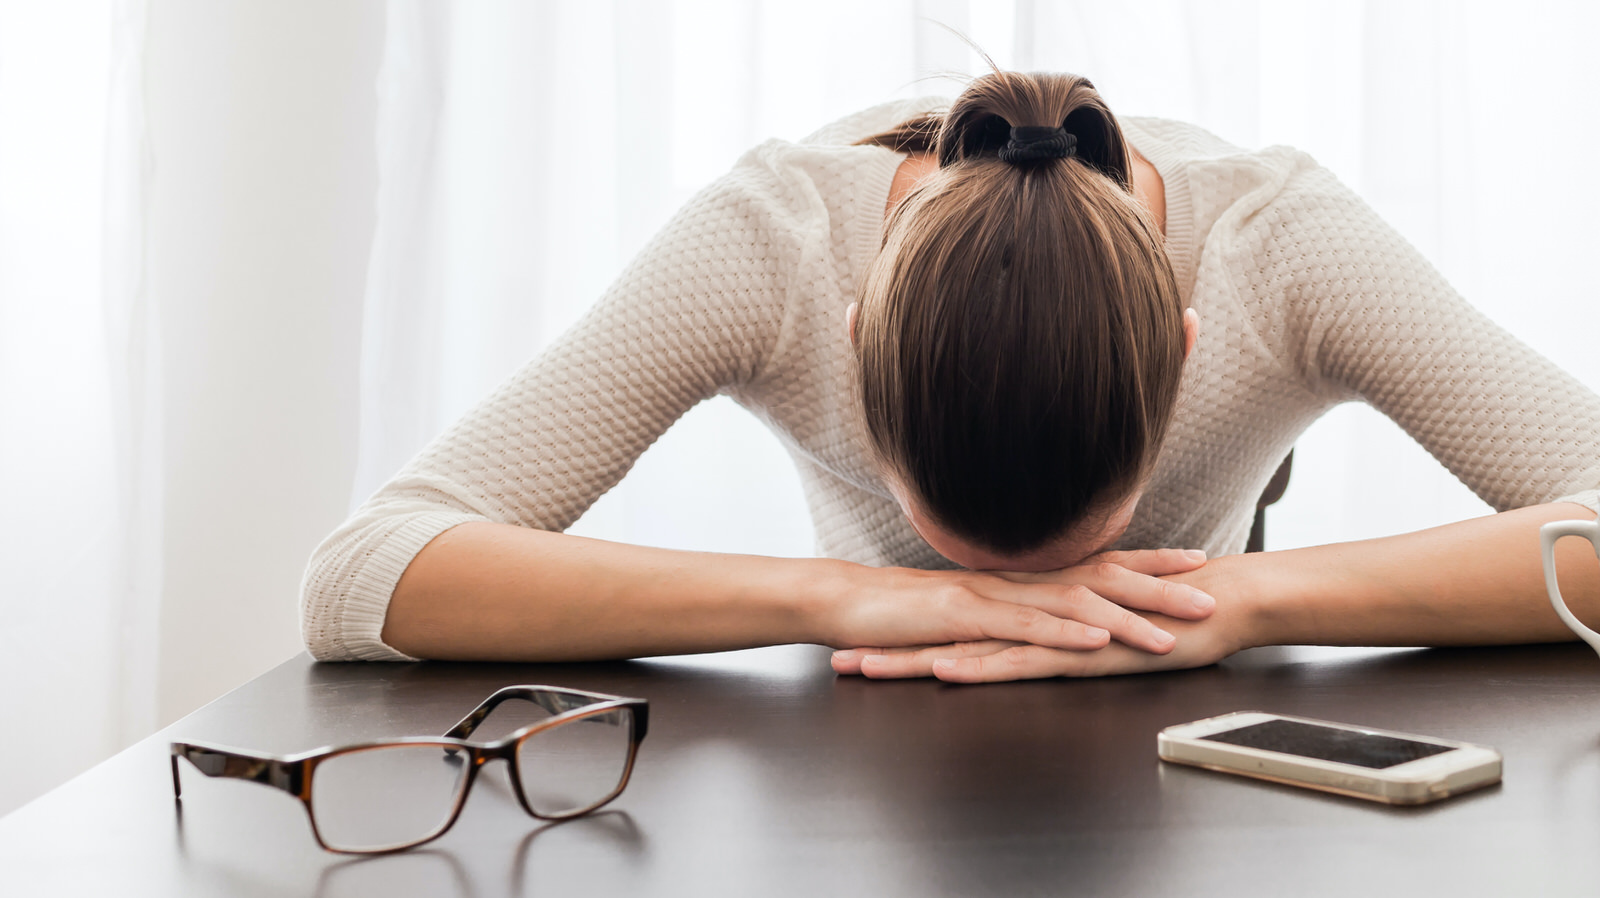 Is Your Audience Experiencing Feed Fatigue?